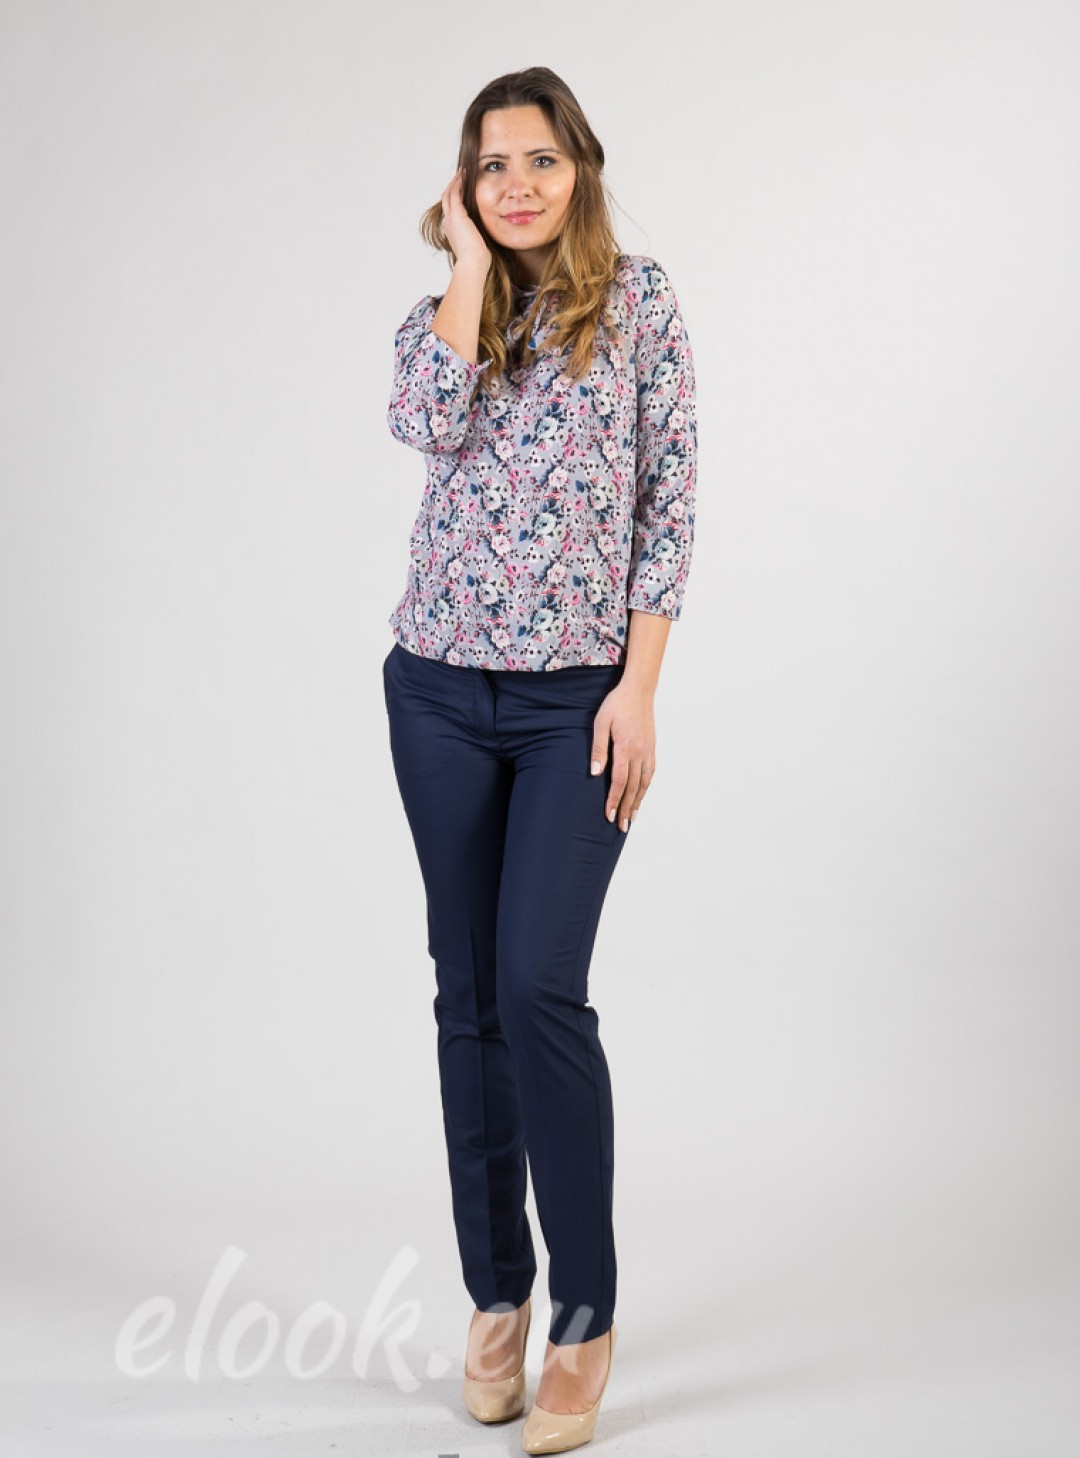 Blouse with a print on the